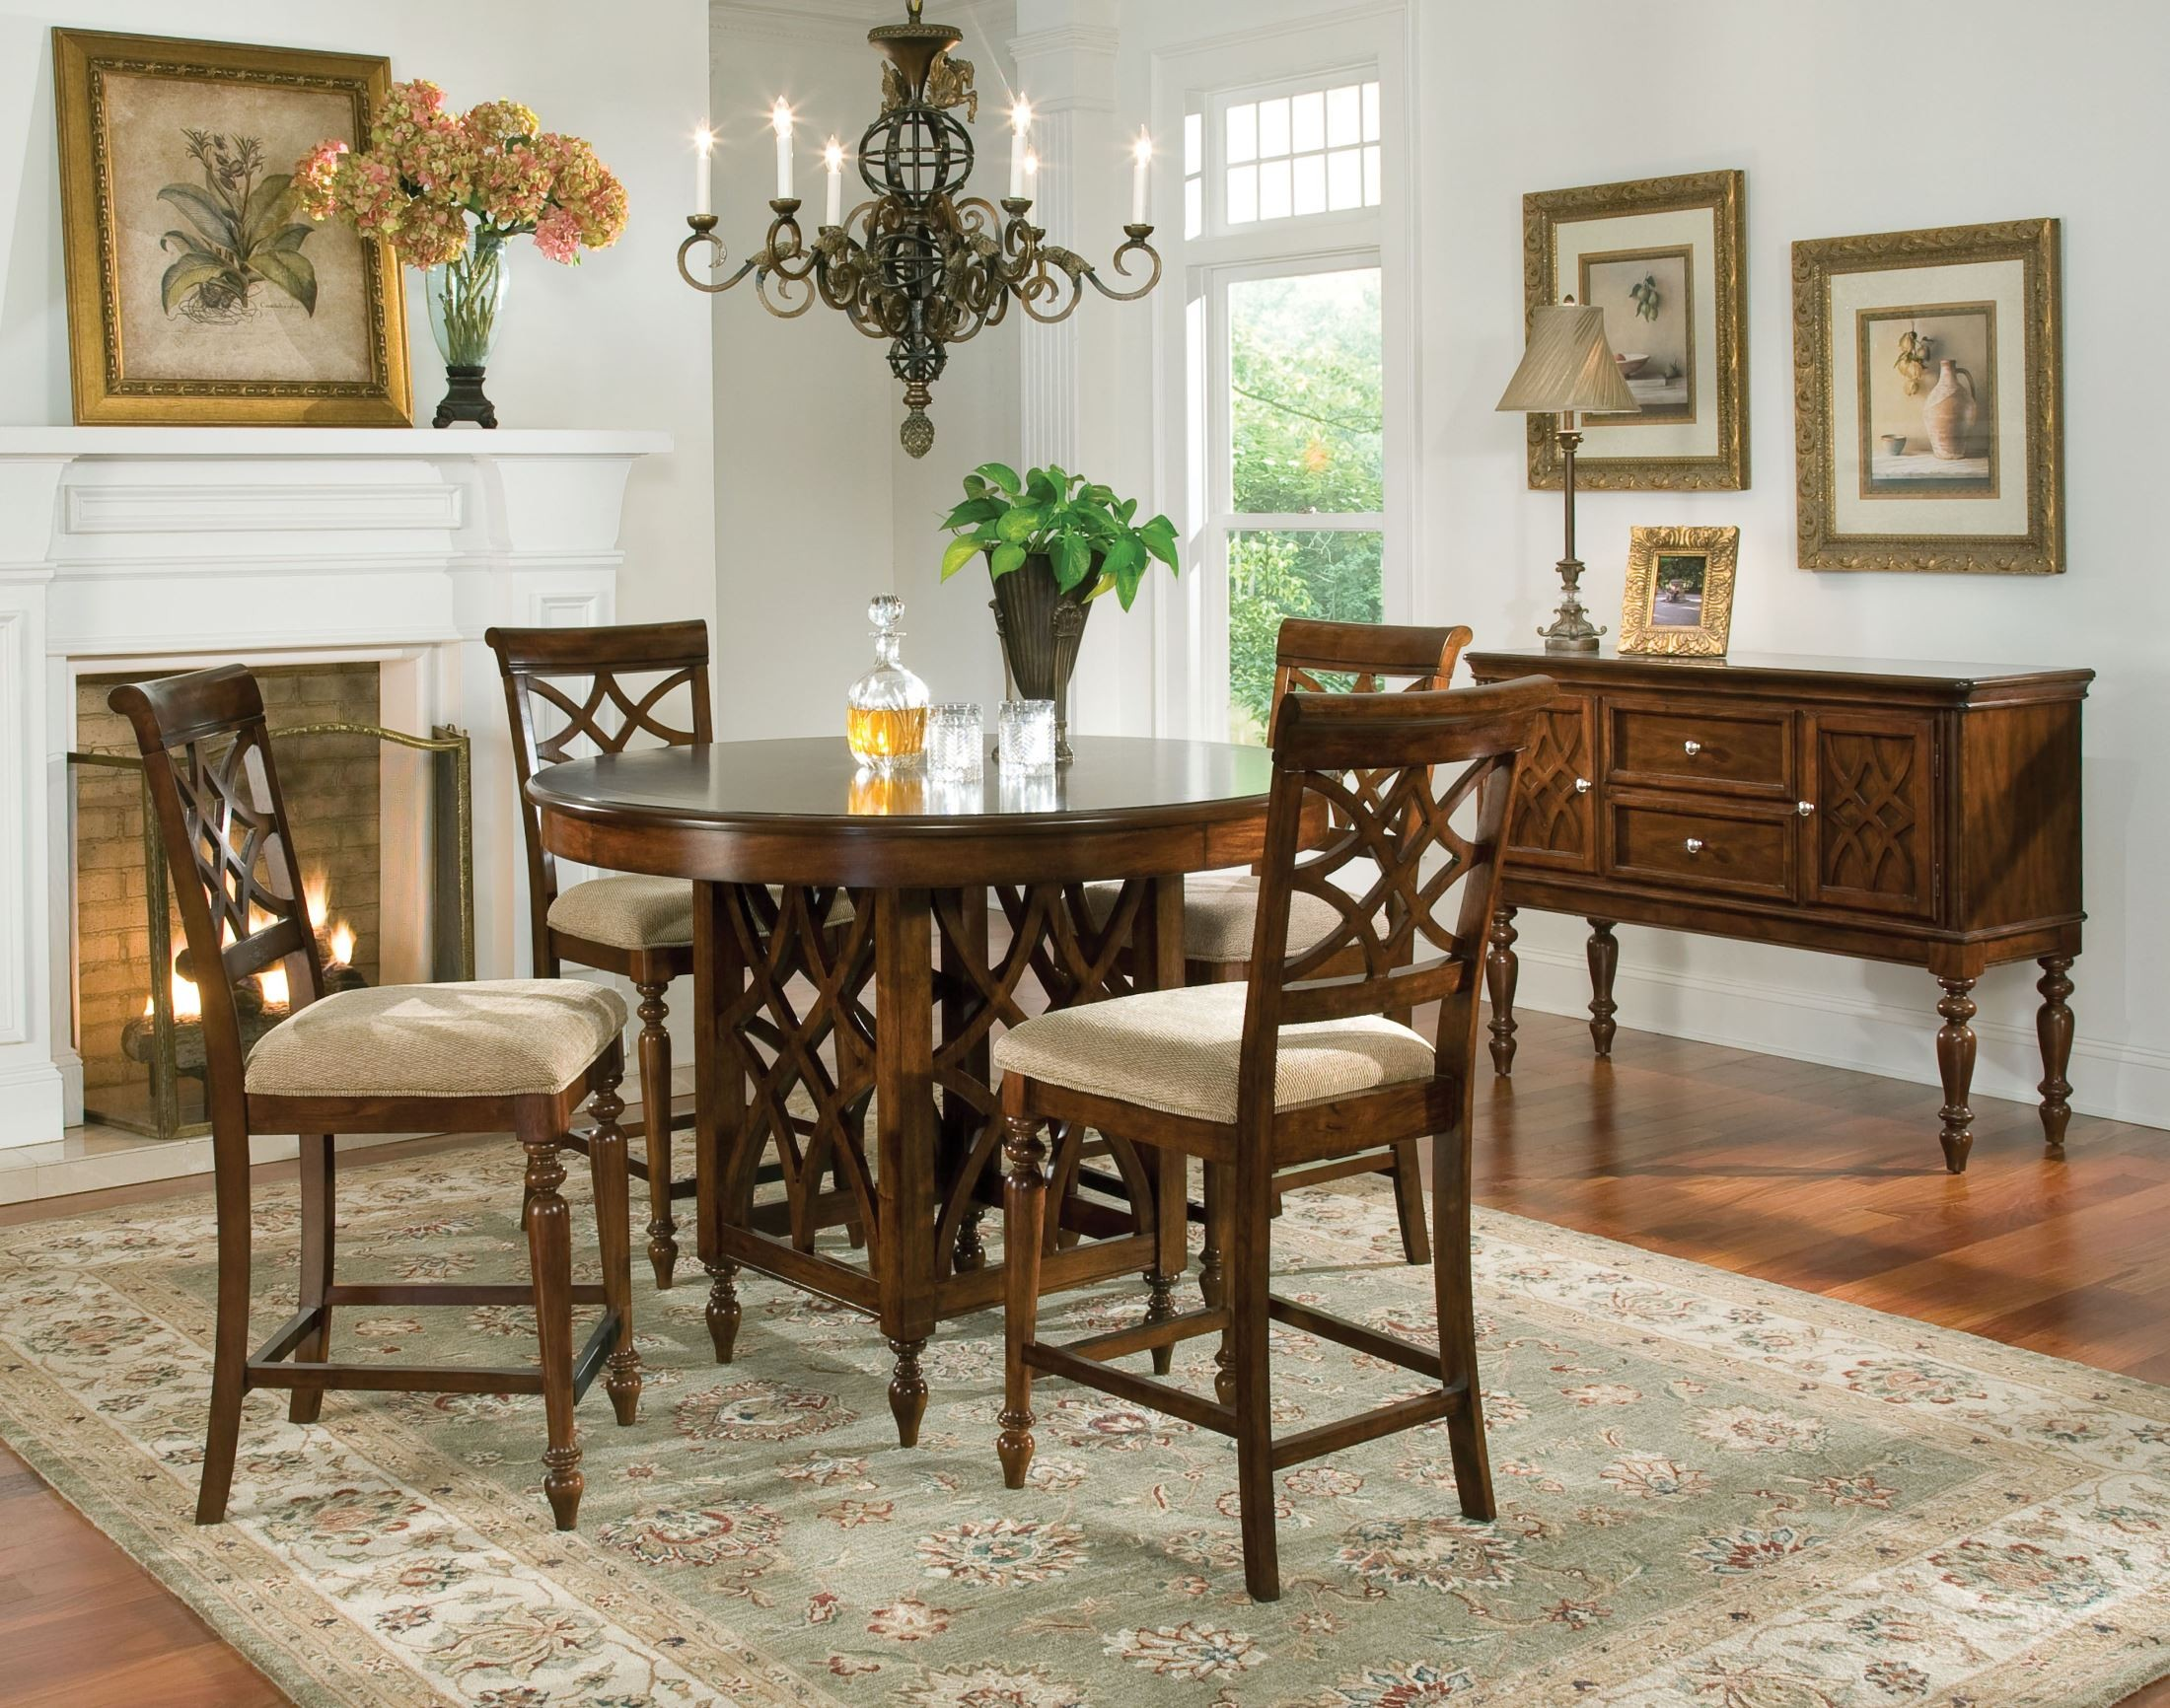 Woodmont brown cherry round counter height dining room set for Standard dining room table height